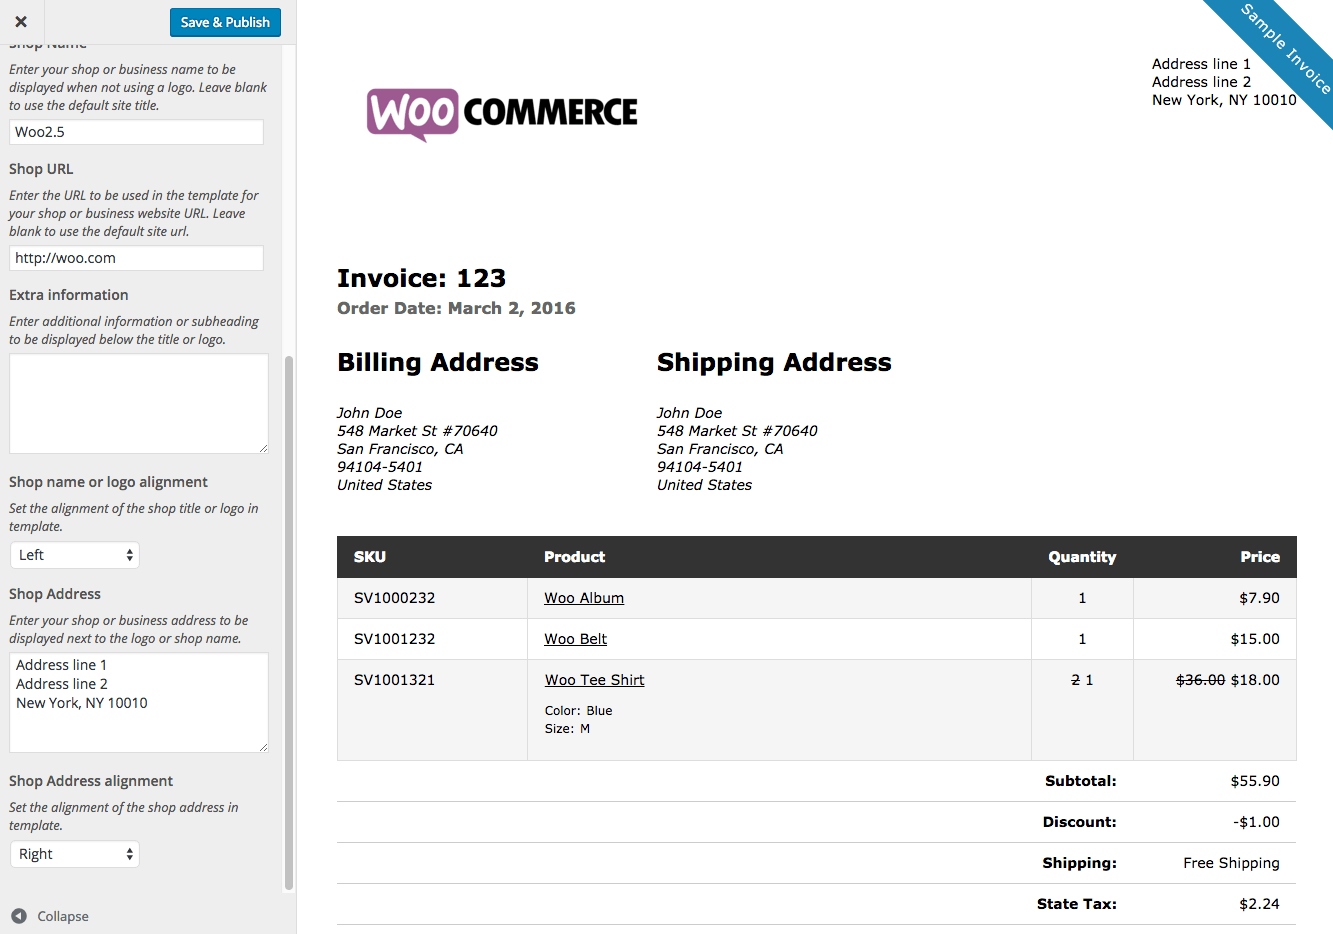 Totallocalus  Picturesque Woocommerce Print Invoices Amp Packing Lists  Woocommerce Docs With Goodlooking Woocommerce Print Invoices  Packing Lists Customizer With Agreeable Paid In Full Receipt Also Calculator With Receipt In Addition Lowes Receipt Lookup And How To Make A Fake Money Order Receipt As Well As Donation Receipt Letter Template Additionally Tmtv Pos Receipt Printer From Docswoocommercecom With Totallocalus  Goodlooking Woocommerce Print Invoices Amp Packing Lists  Woocommerce Docs With Agreeable Woocommerce Print Invoices  Packing Lists Customizer And Picturesque Paid In Full Receipt Also Calculator With Receipt In Addition Lowes Receipt Lookup From Docswoocommercecom